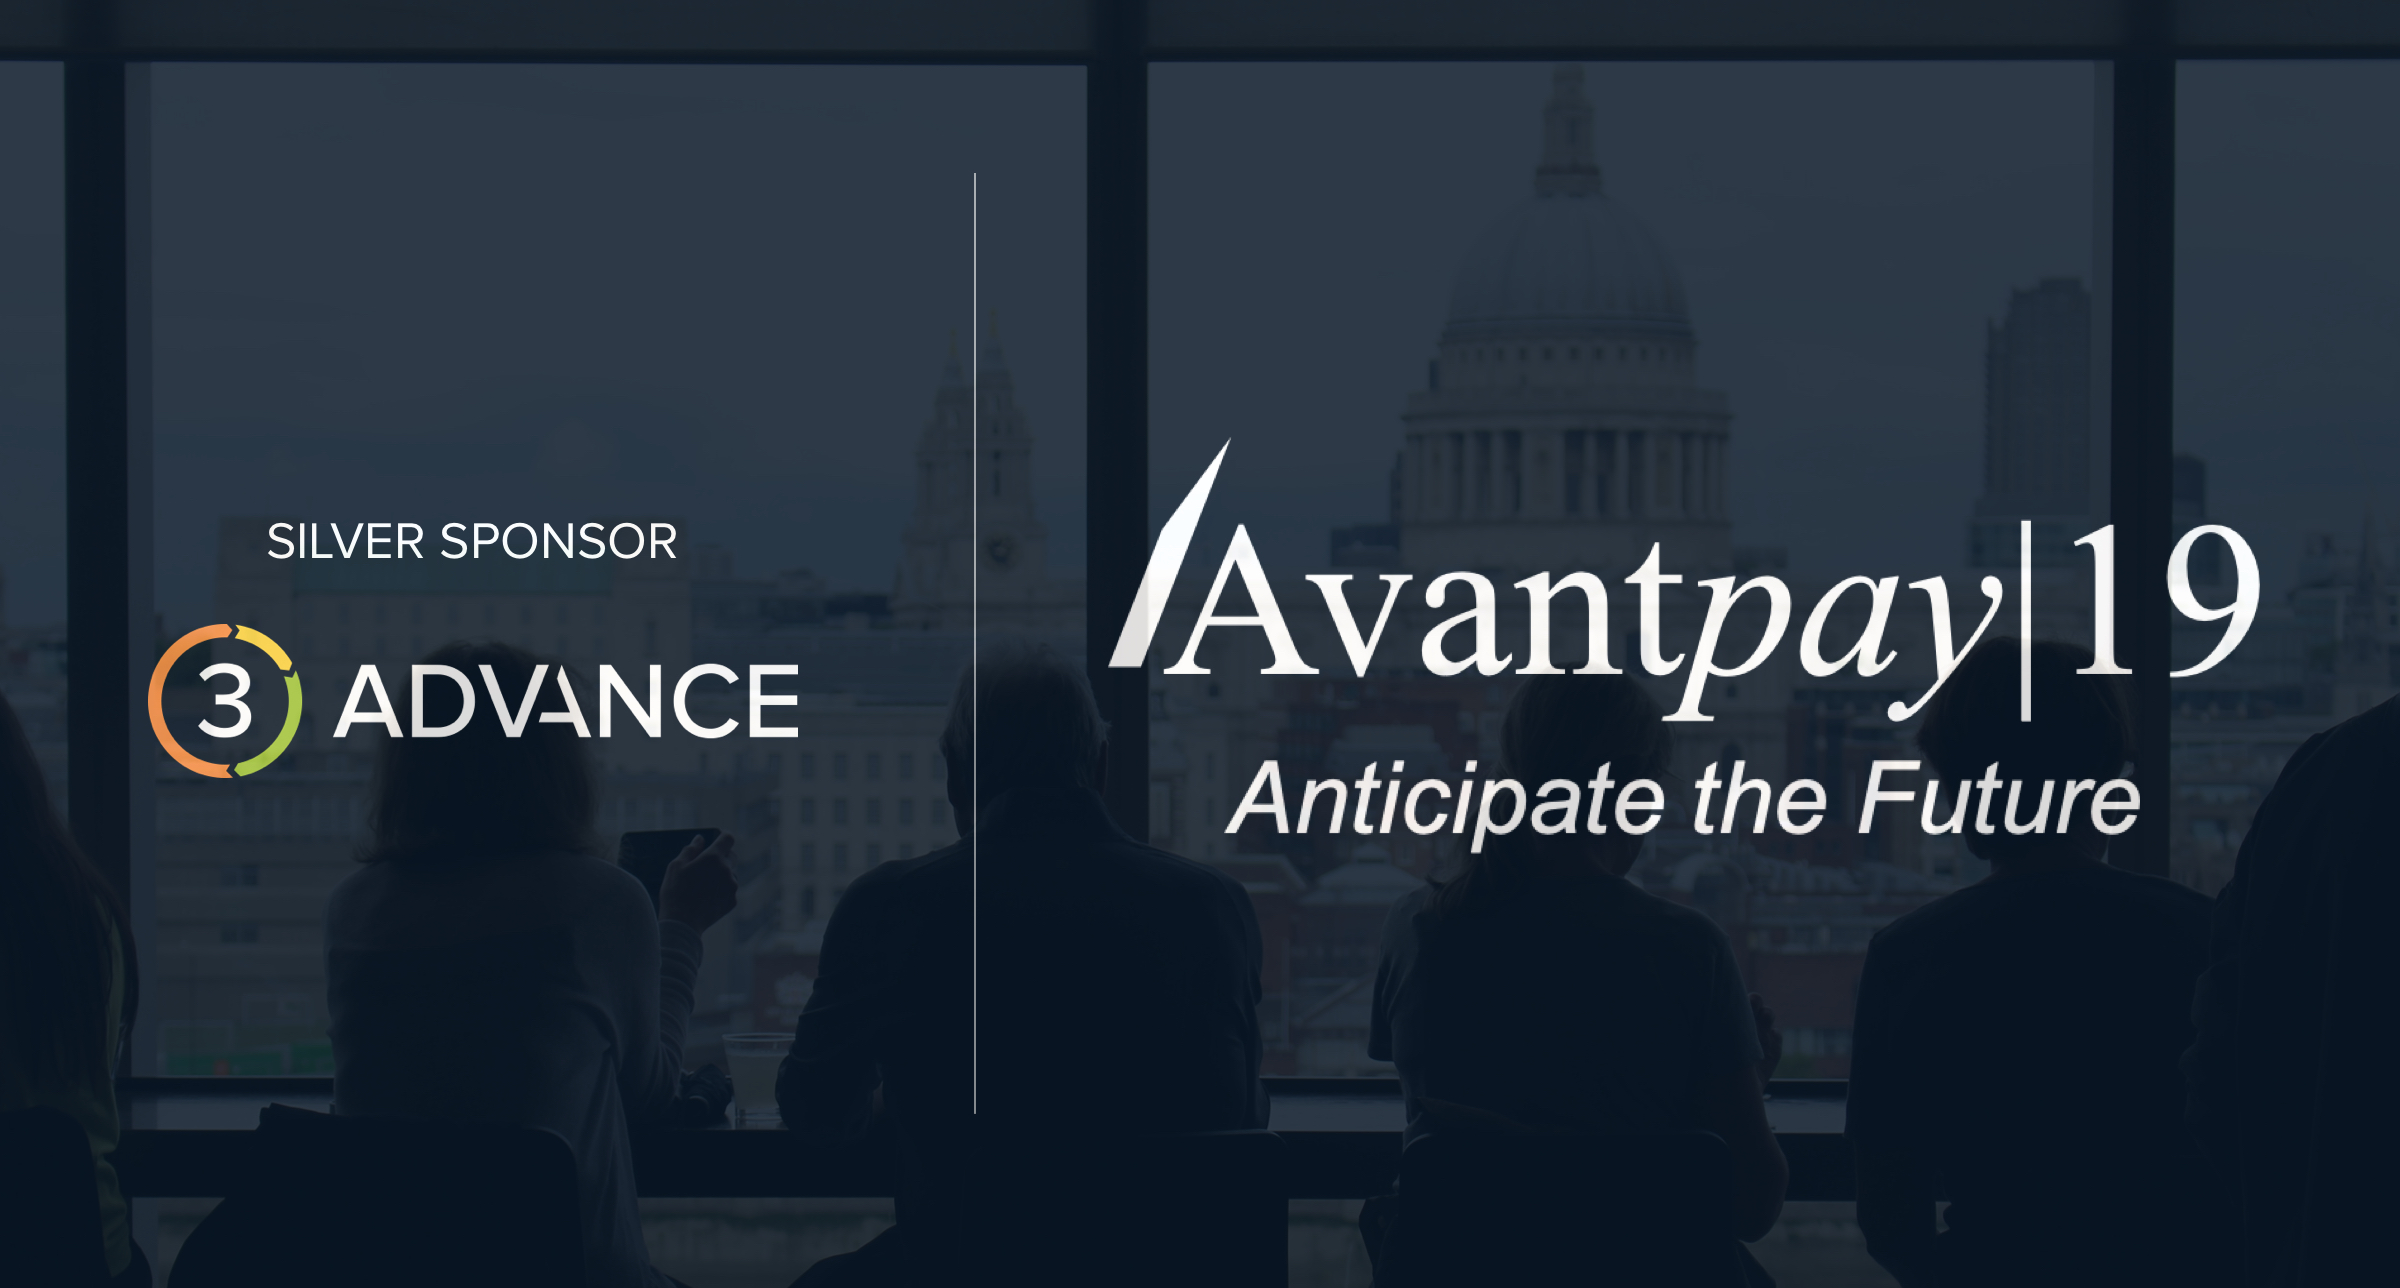 Why we're sponsoring AvantPay: User Experience!